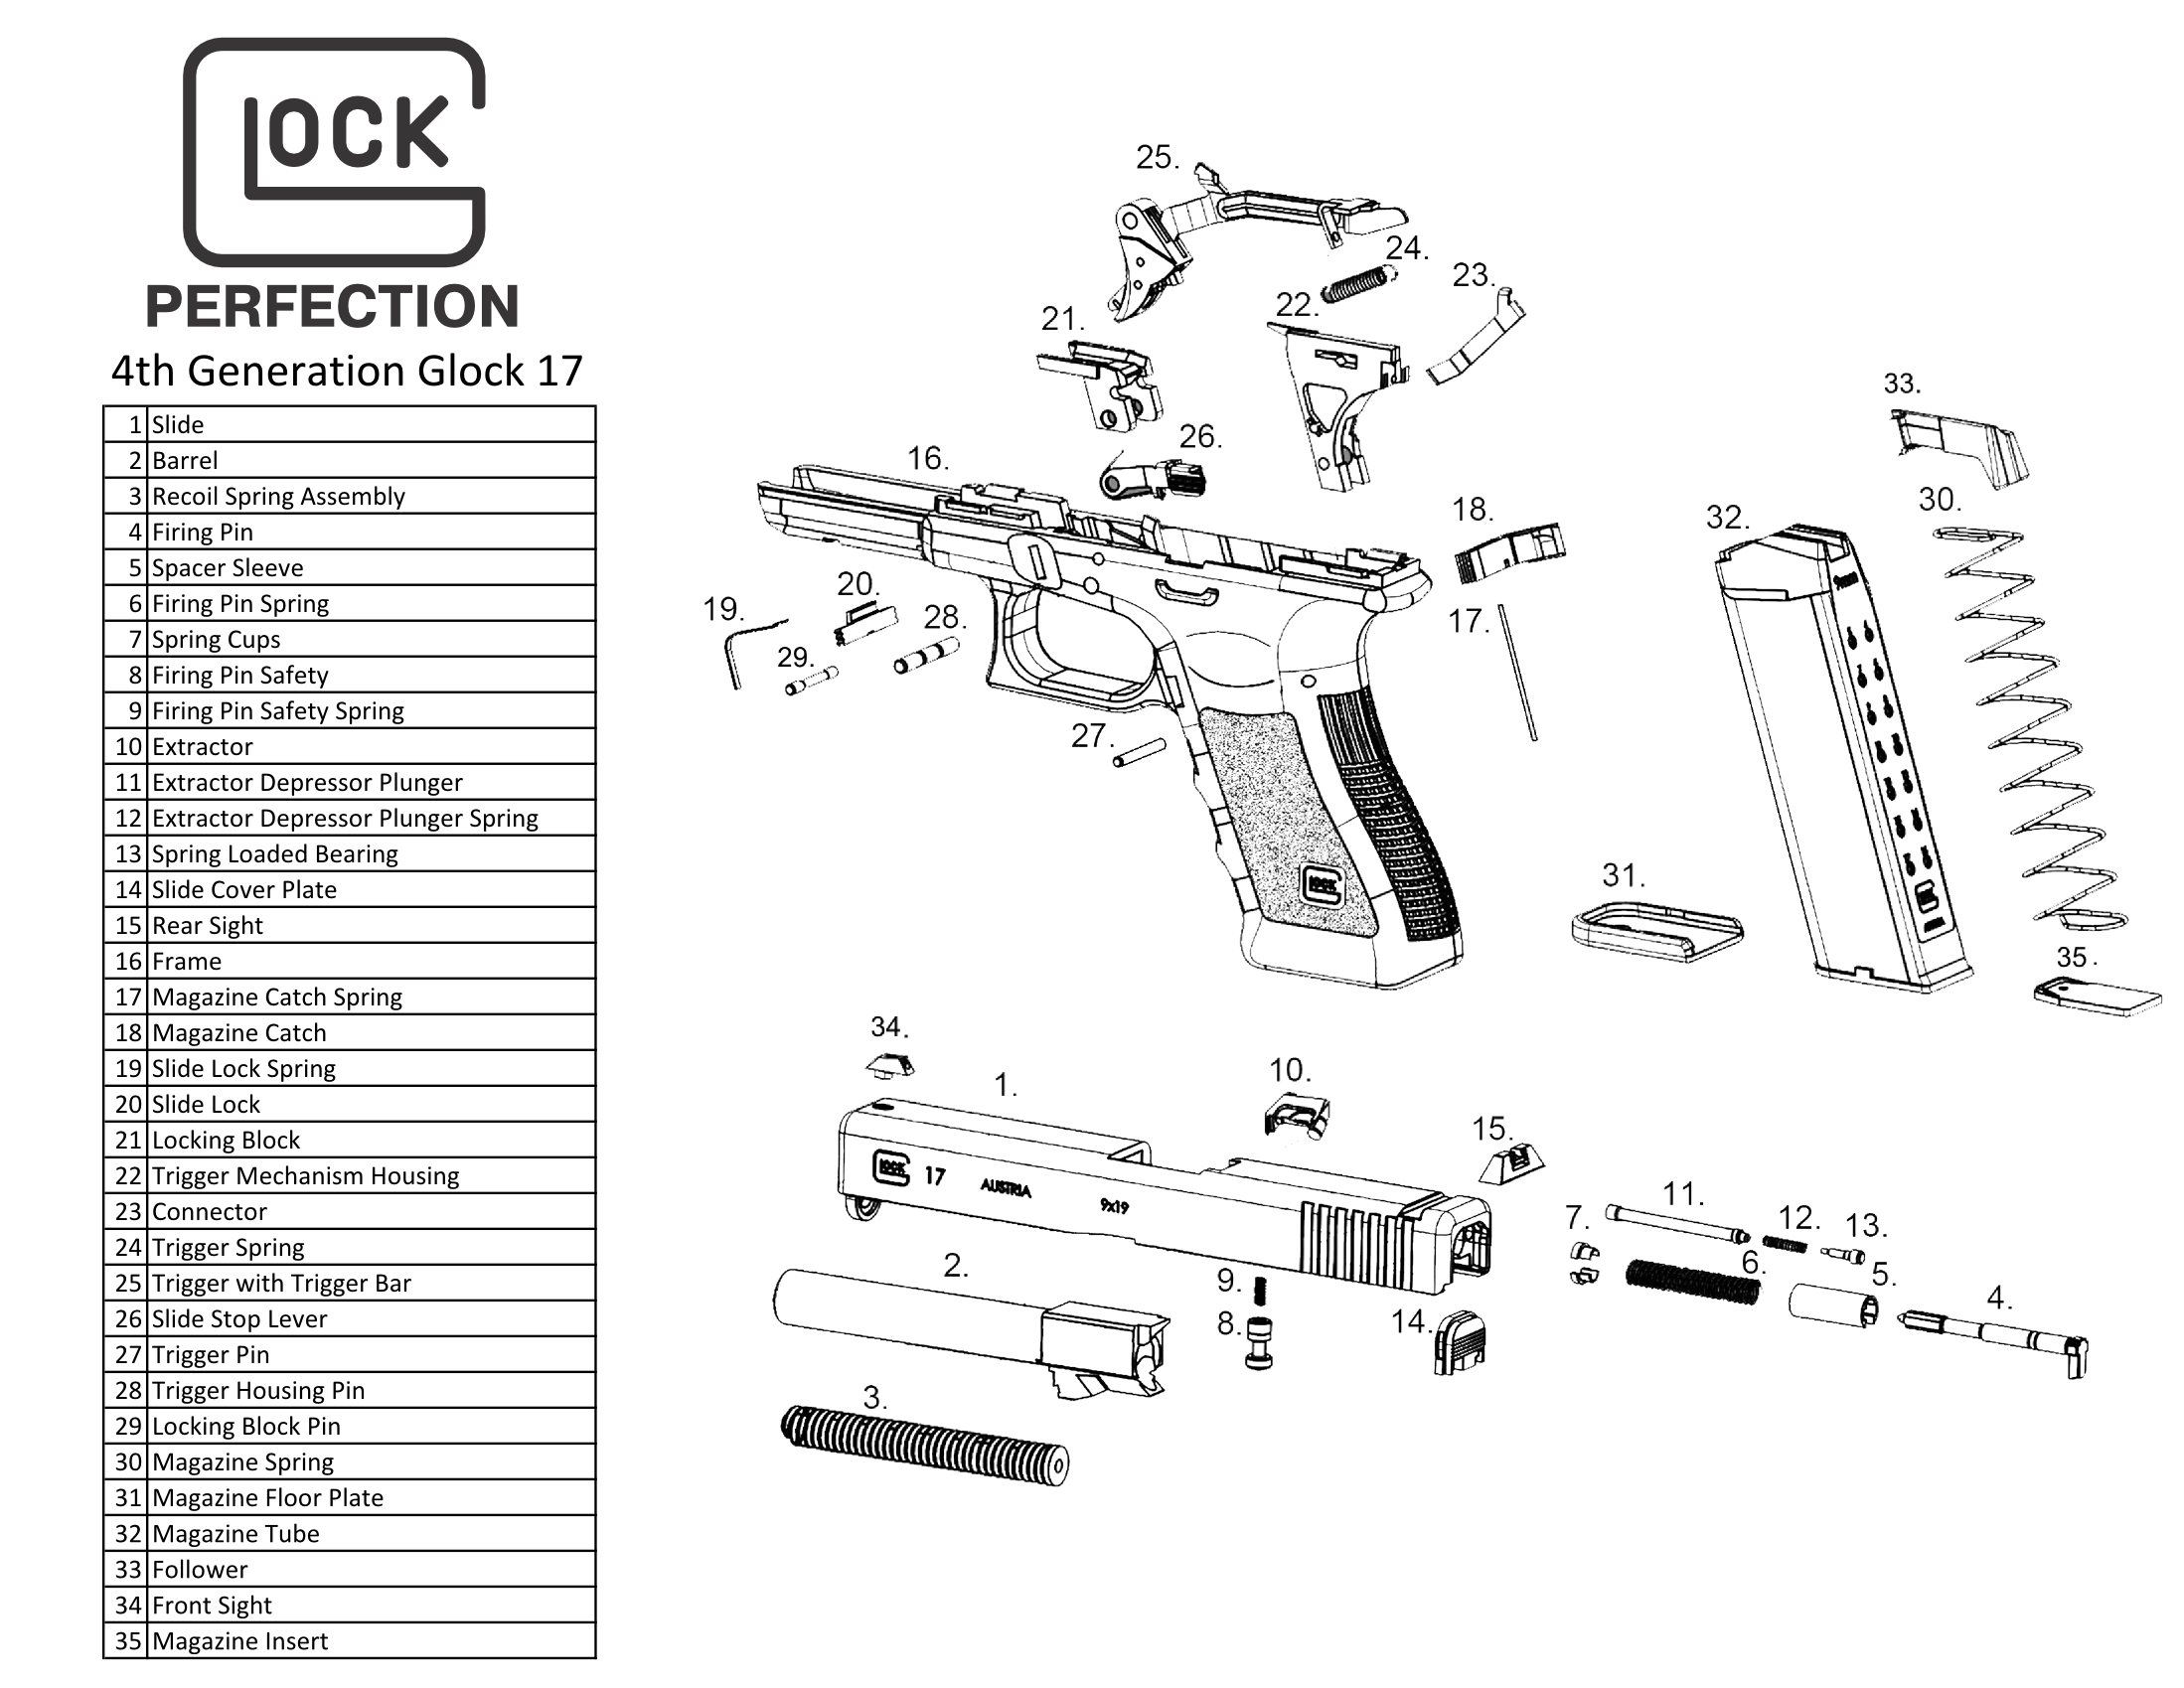 Remington 500 Parts Diagram Wiring Diagrams For Dummies 870 Lzk Gallery Glock 17 4th Generation Exploded View 11 87 Online